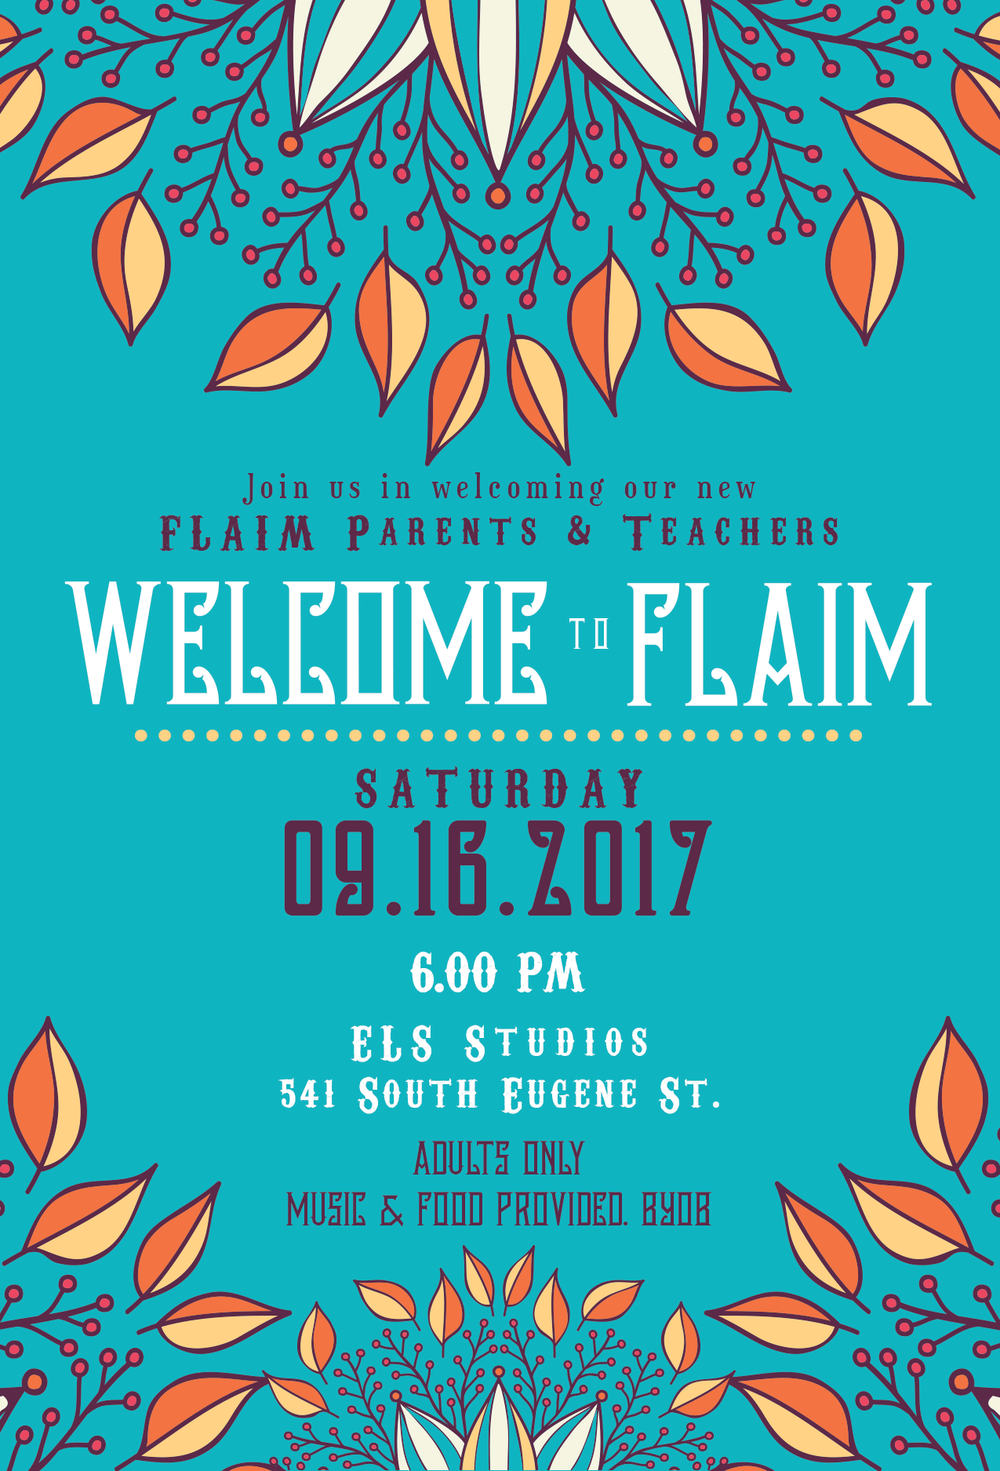 FLAIM_WelcomeSocial_090517.png